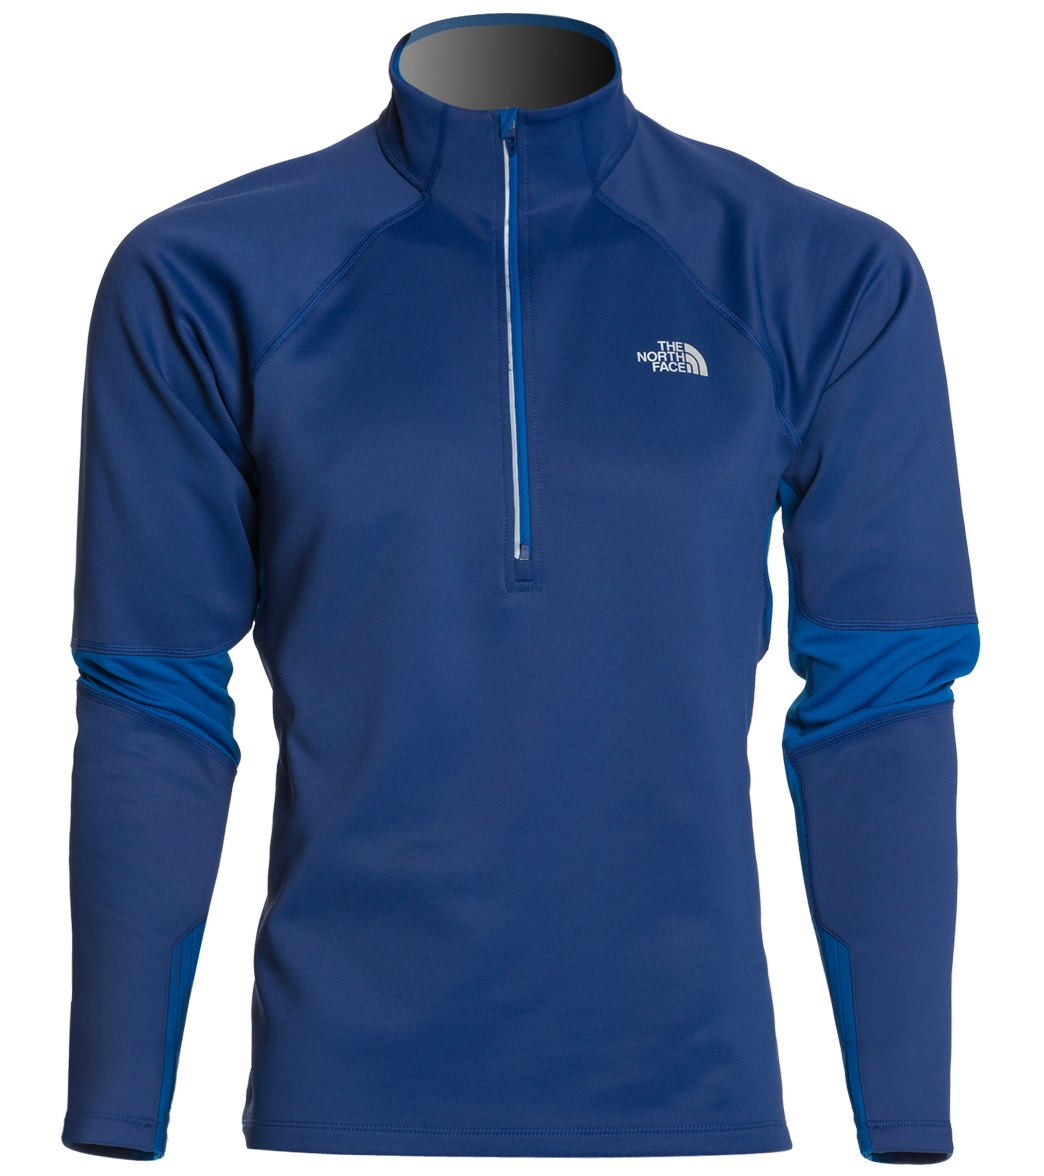 ade900afc The North Face Men's Momentum 1u002F2 Zip Running Thermal